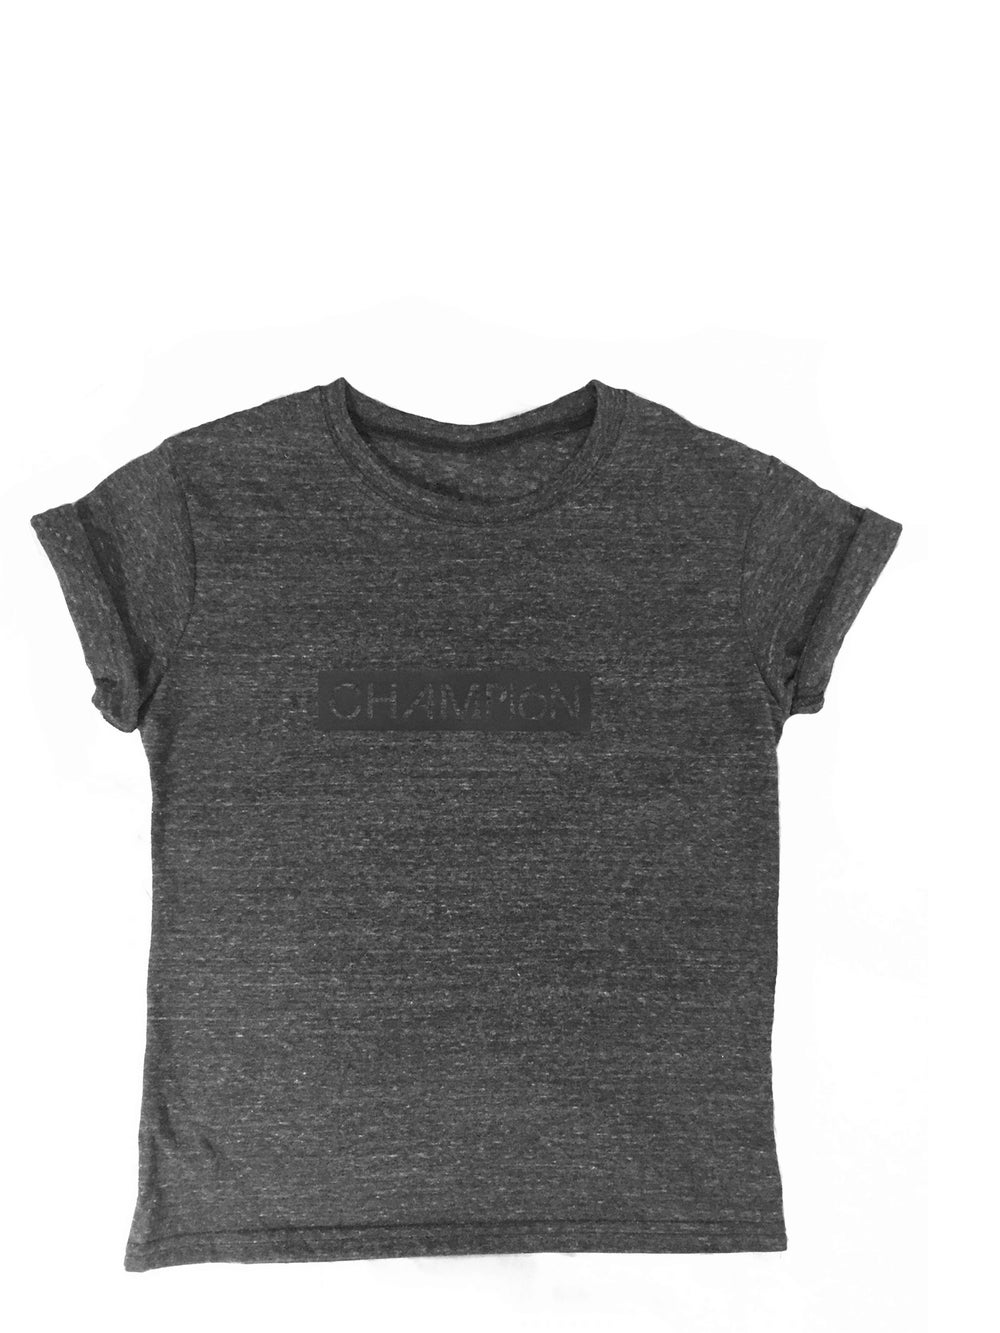 Image of unisex kids recycled block t-shirt